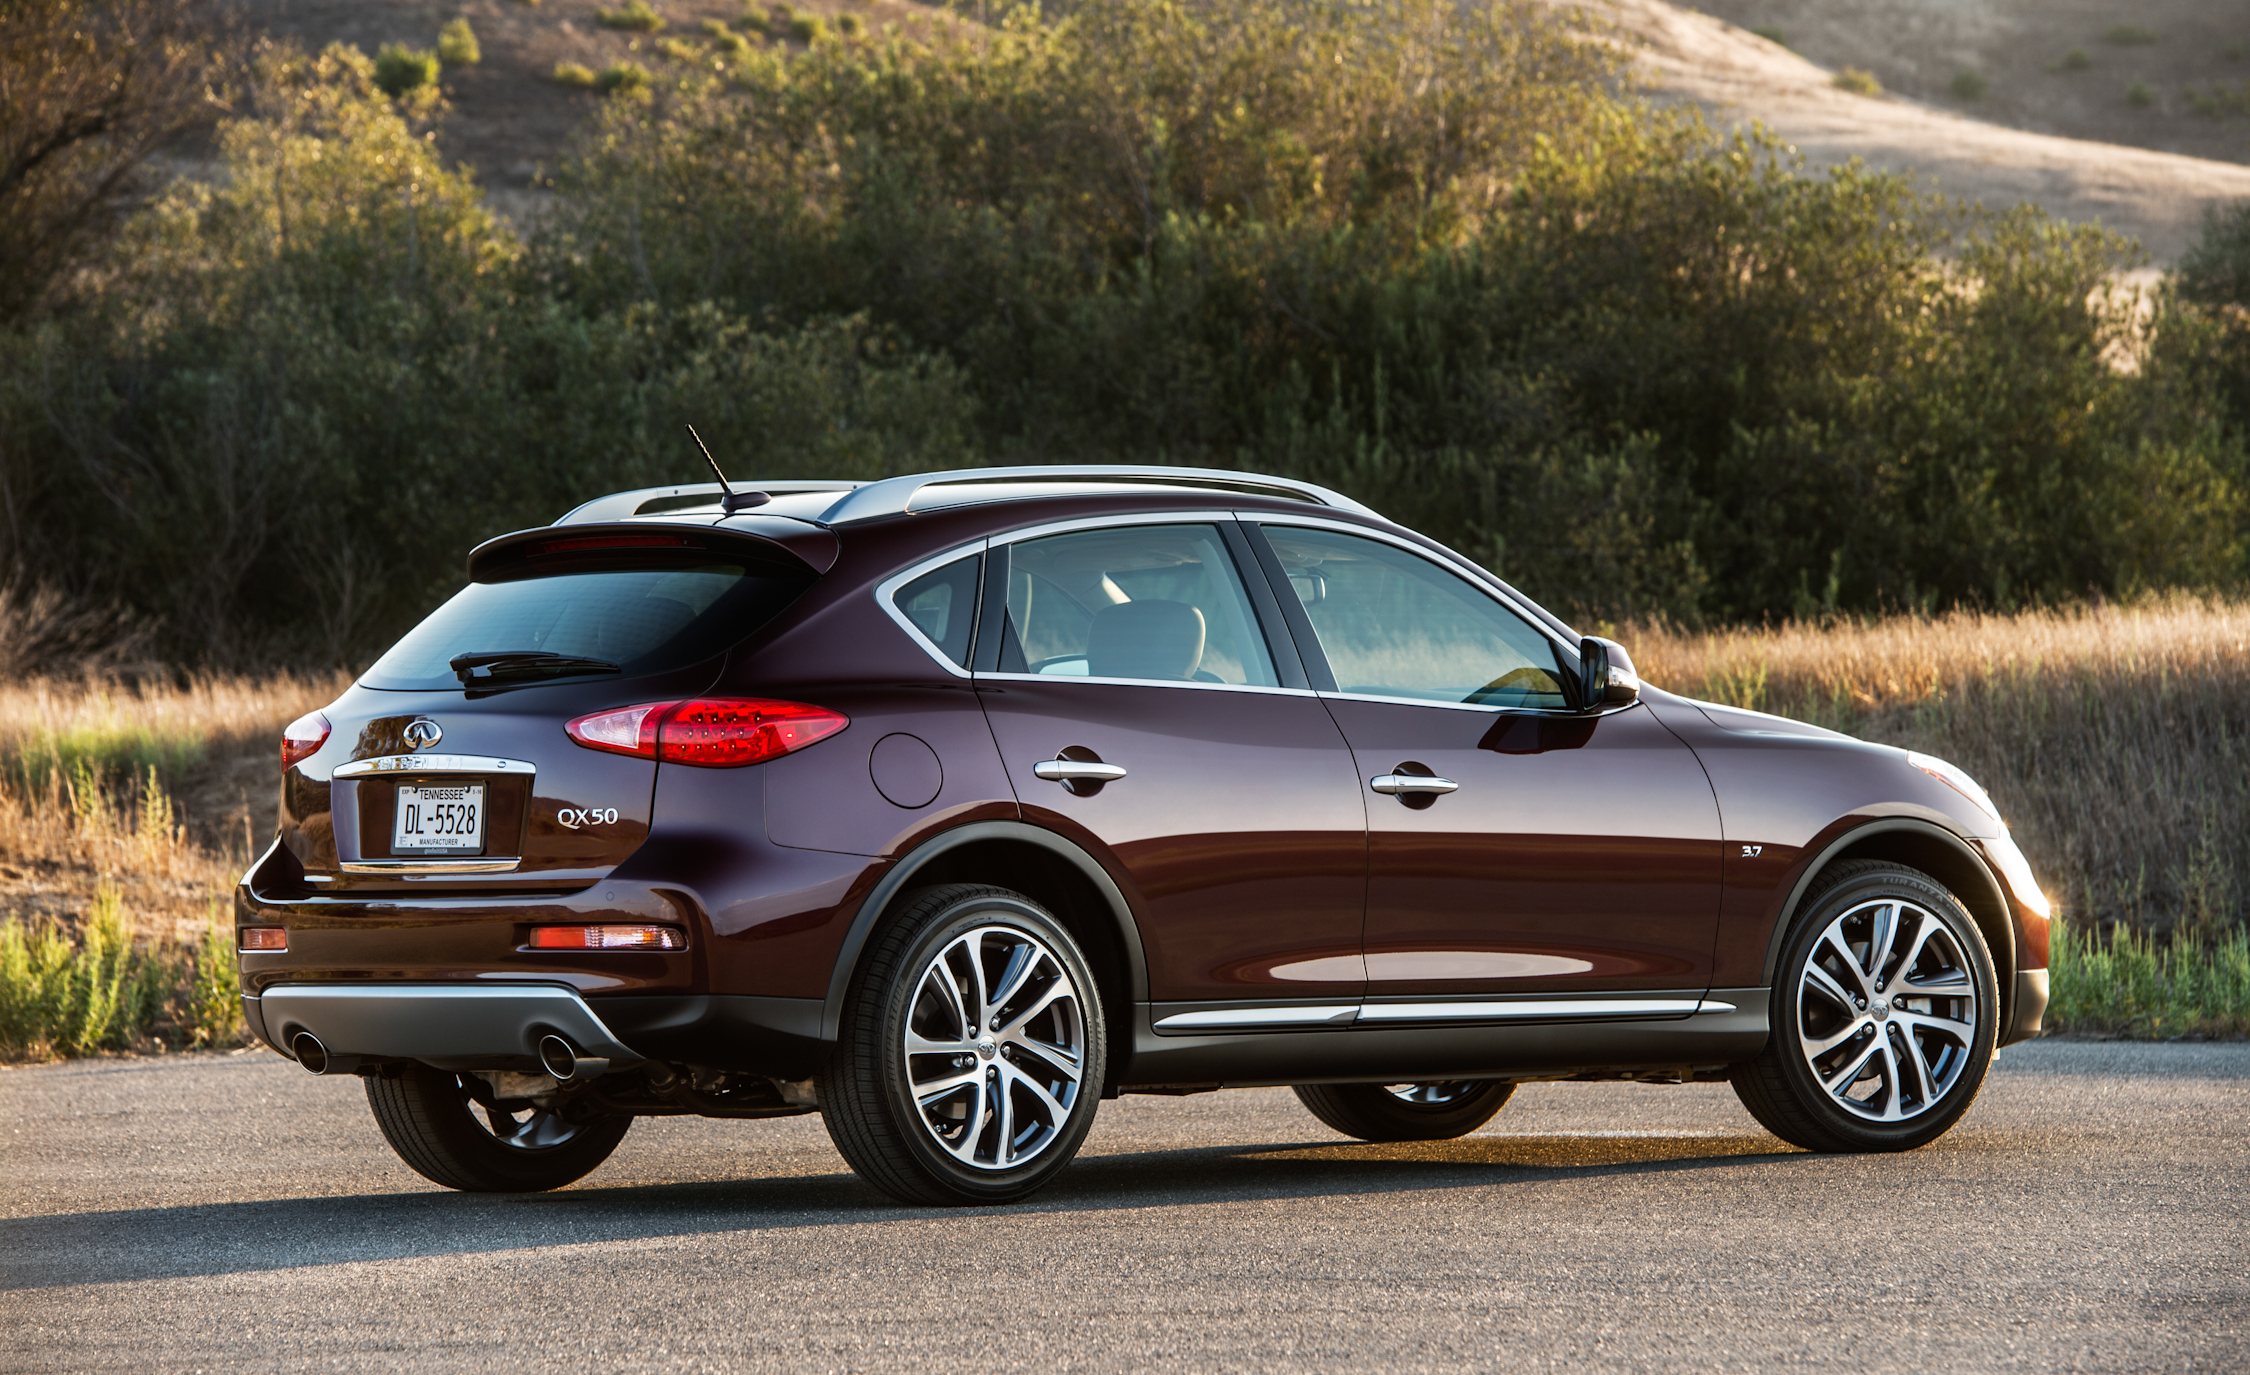 2016 Infiniti QX50 Exterior Full Rear and Side